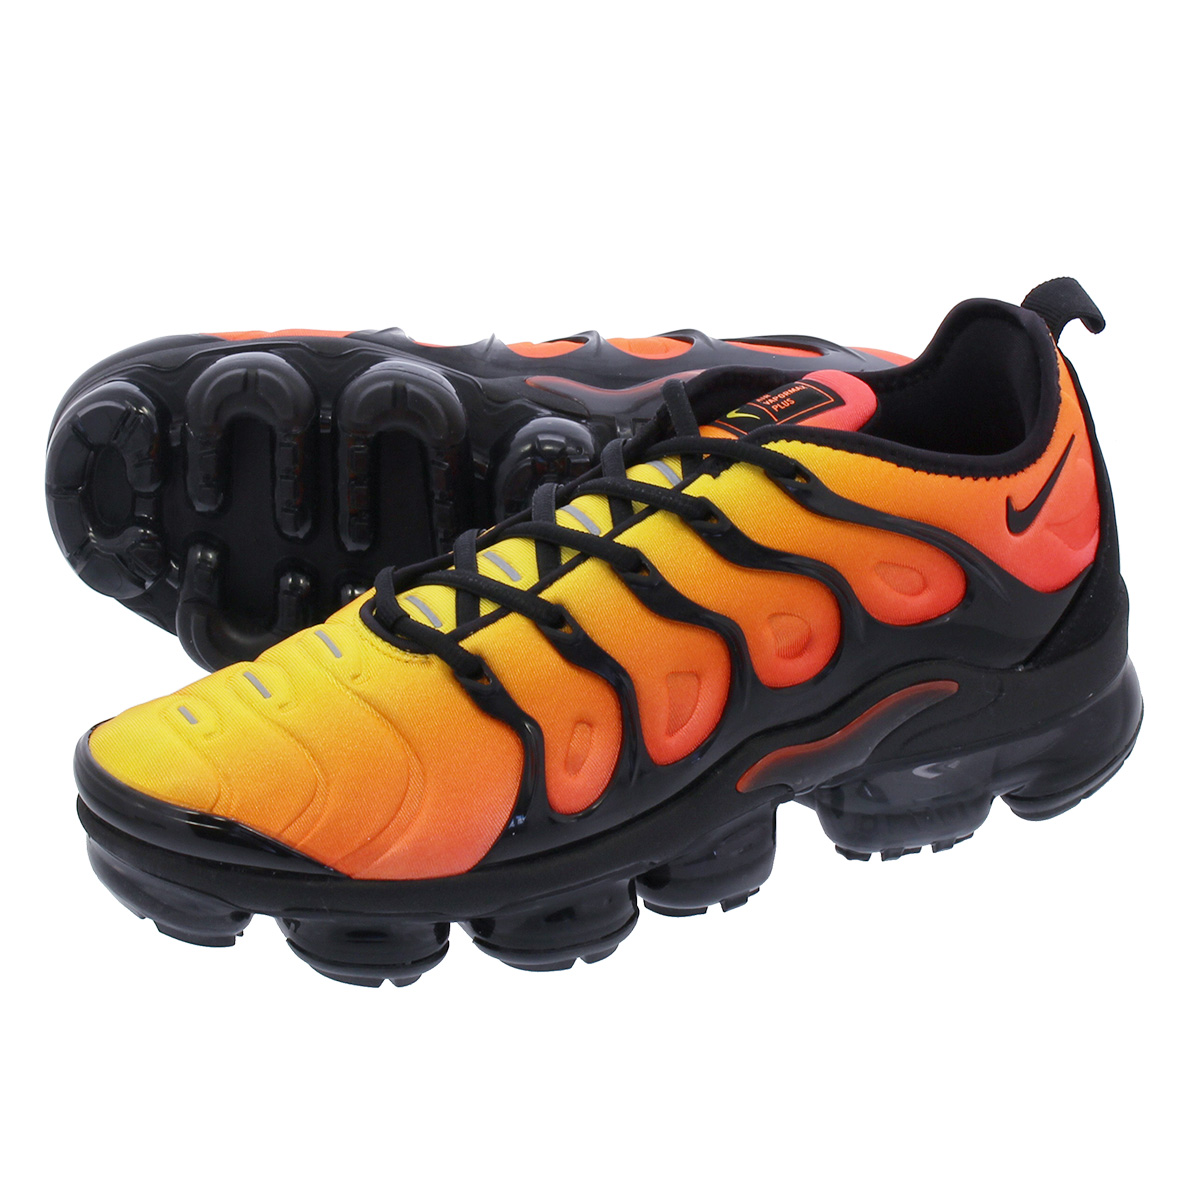 397db8b4798 NIKE AIR VAPORMAX PLUS Nike vapor max plus TOTAL ORANGE BLACK TOTAL CRIMSON  SUNSET 924